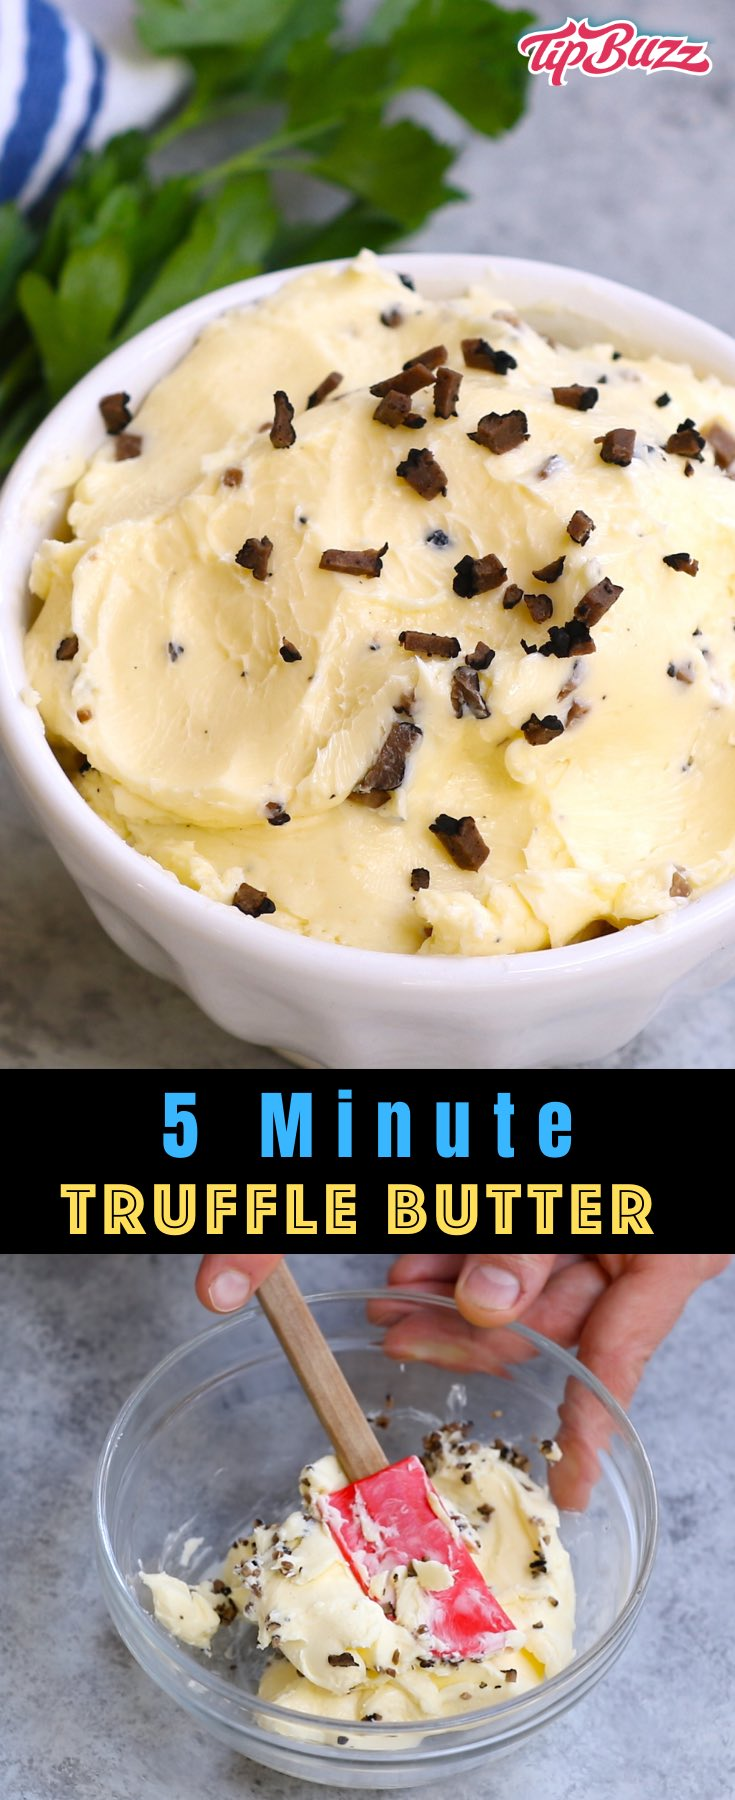 This homemade truffle butter recipe is easy to make with just 3 ingredients! You can use black or white truffles depending on your preference. Use it on steak, seafood, poultry, vegetables, pasta and more!